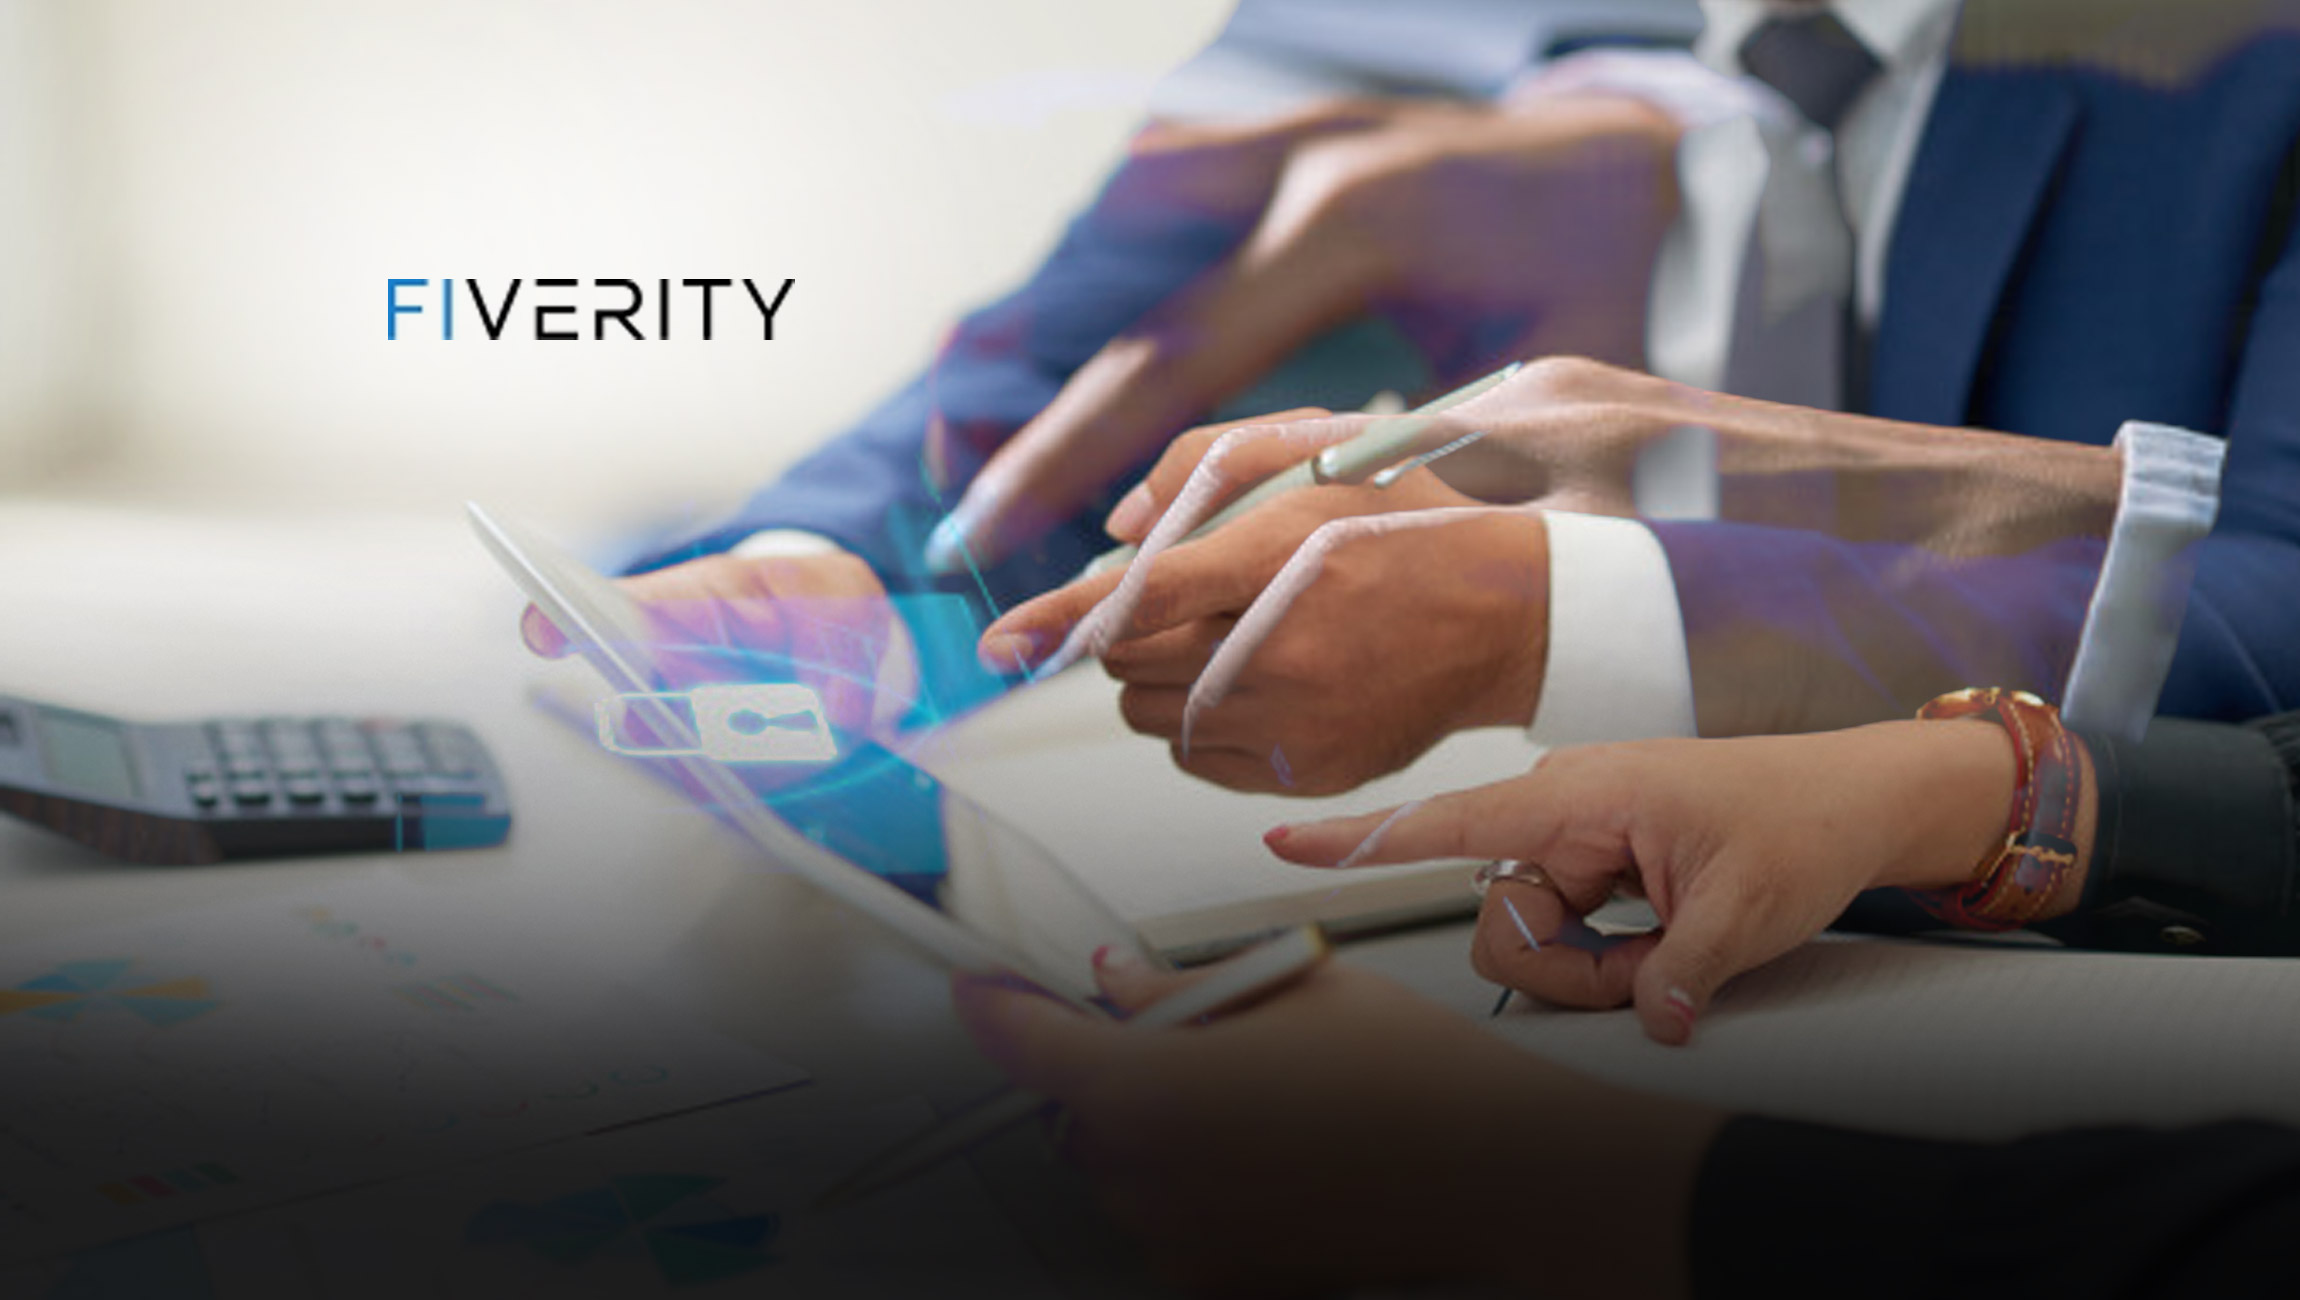 FiVerity, Inc. Tackles Cyber Fraud with Combined Corporate and Product Launch